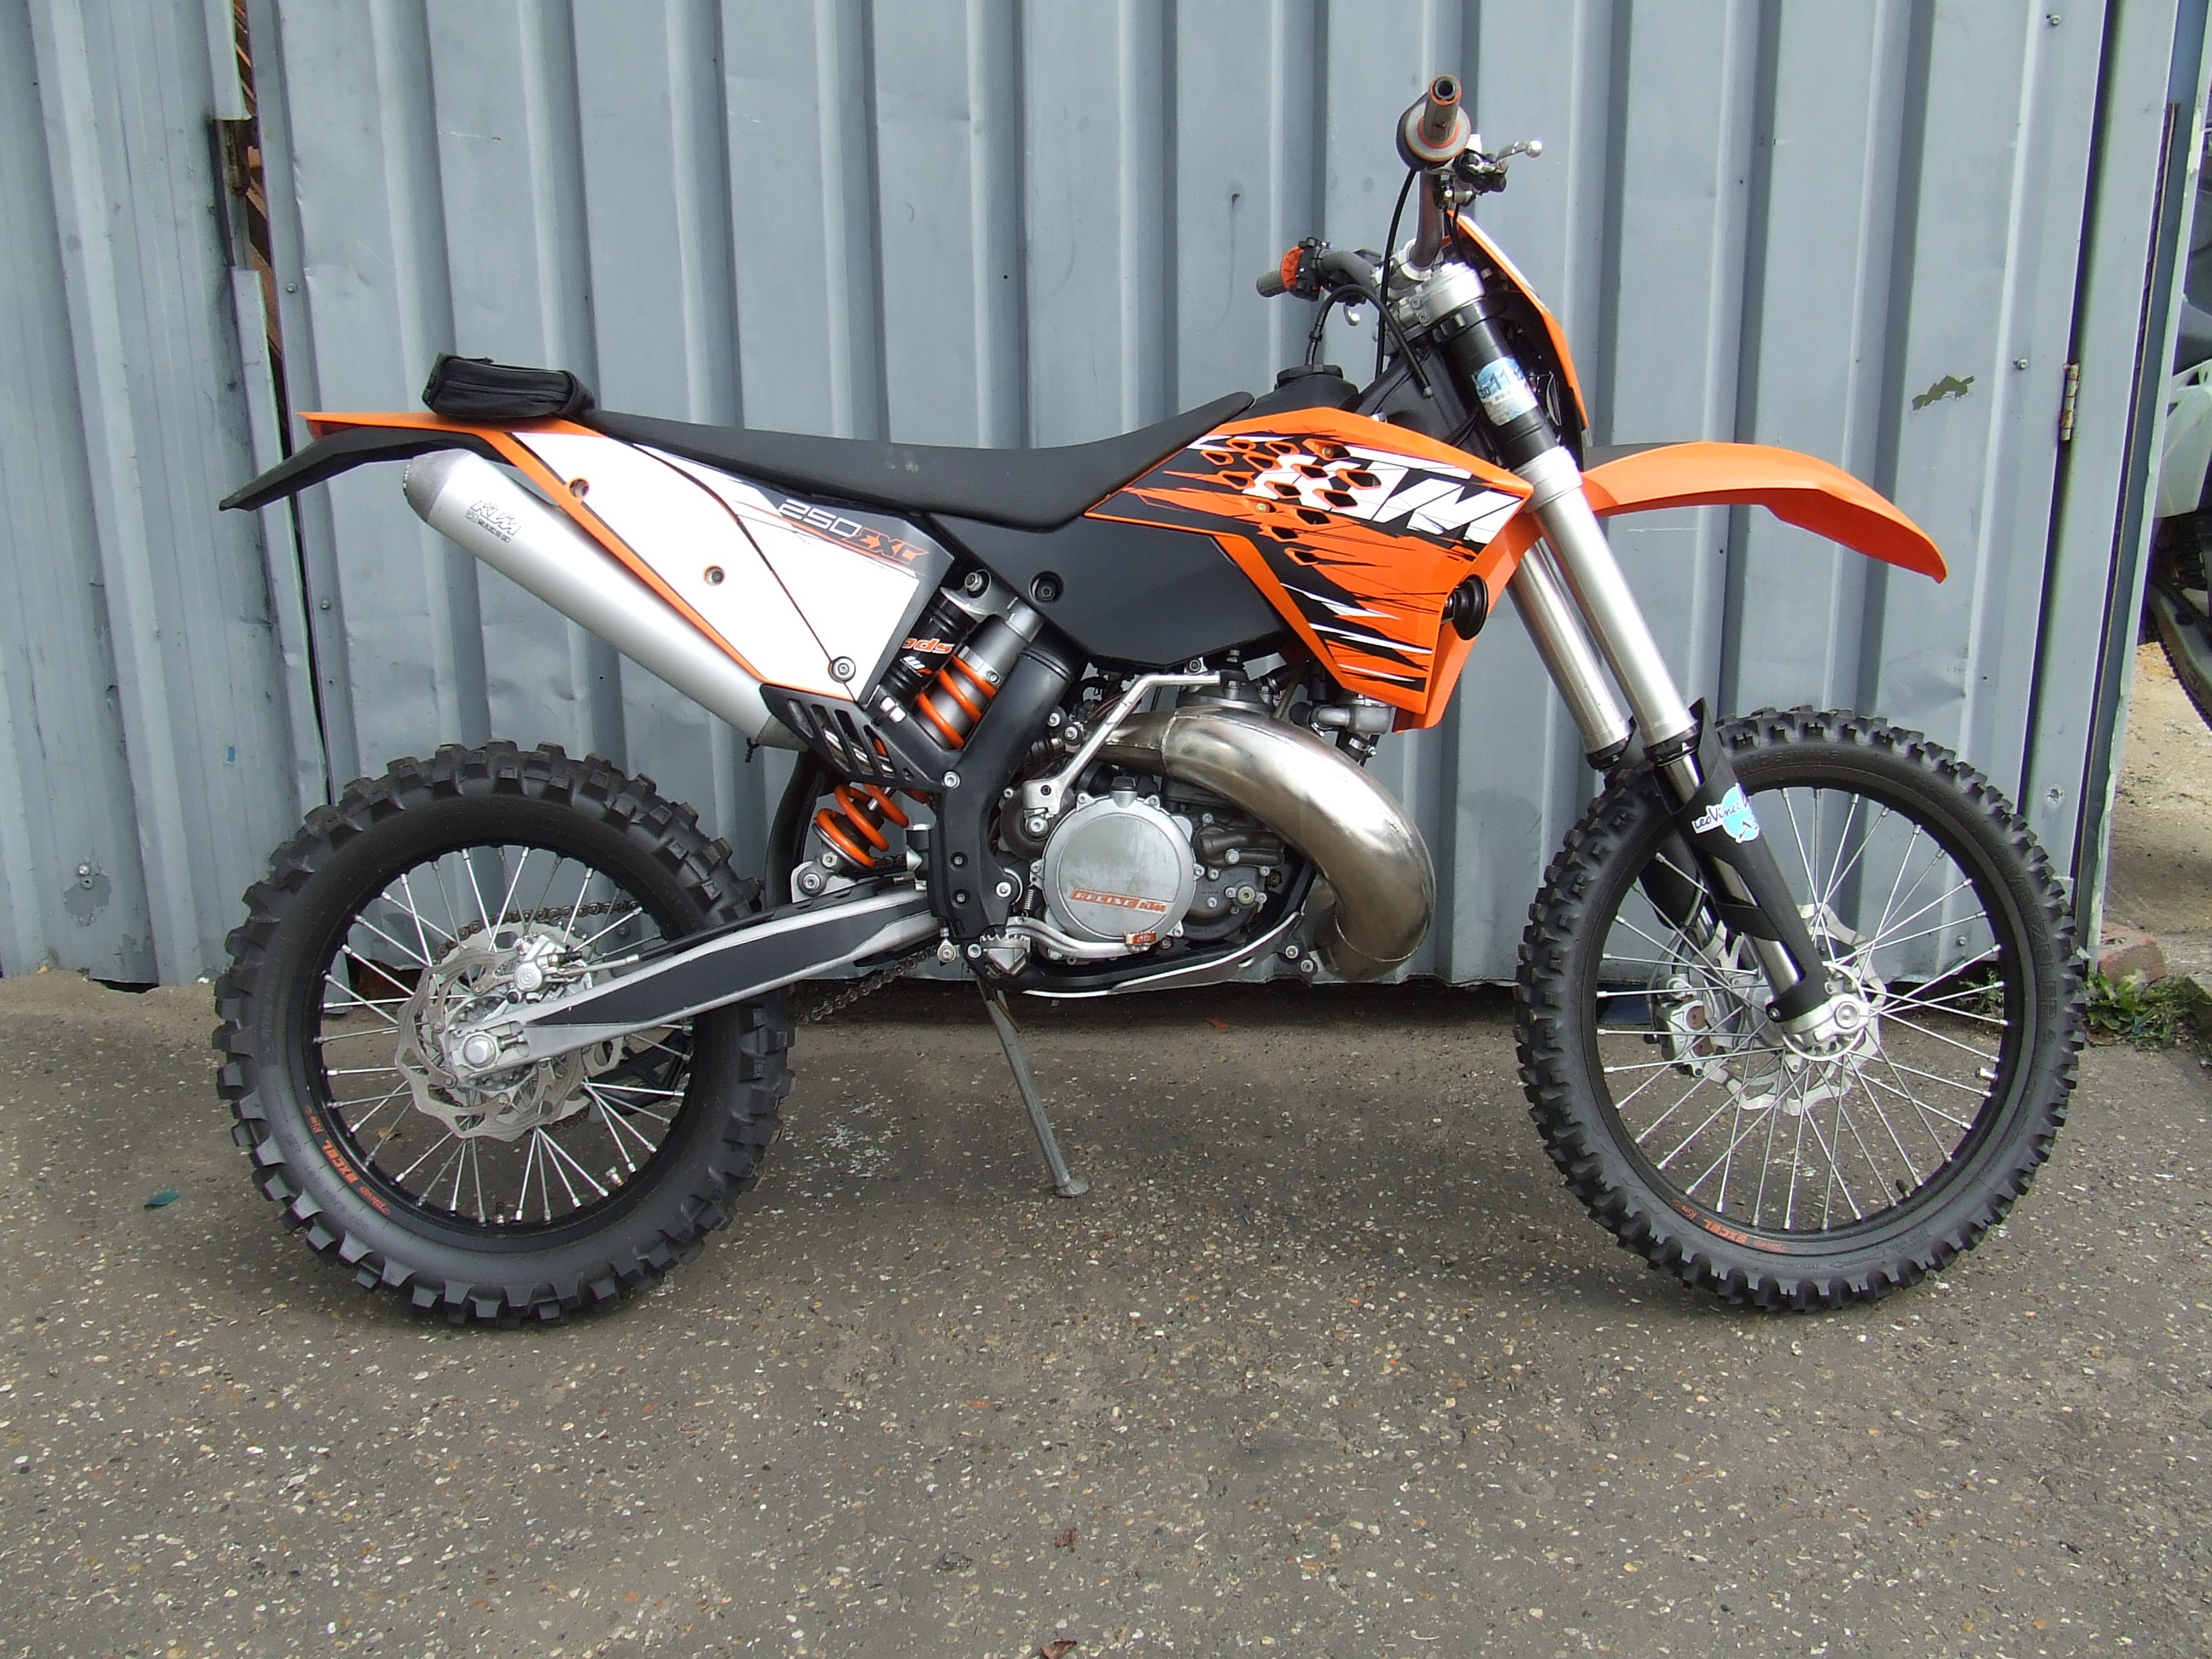 Stupendous 2001 Ktm 250 Exc Pics Specs And Information Caraccident5 Cool Chair Designs And Ideas Caraccident5Info